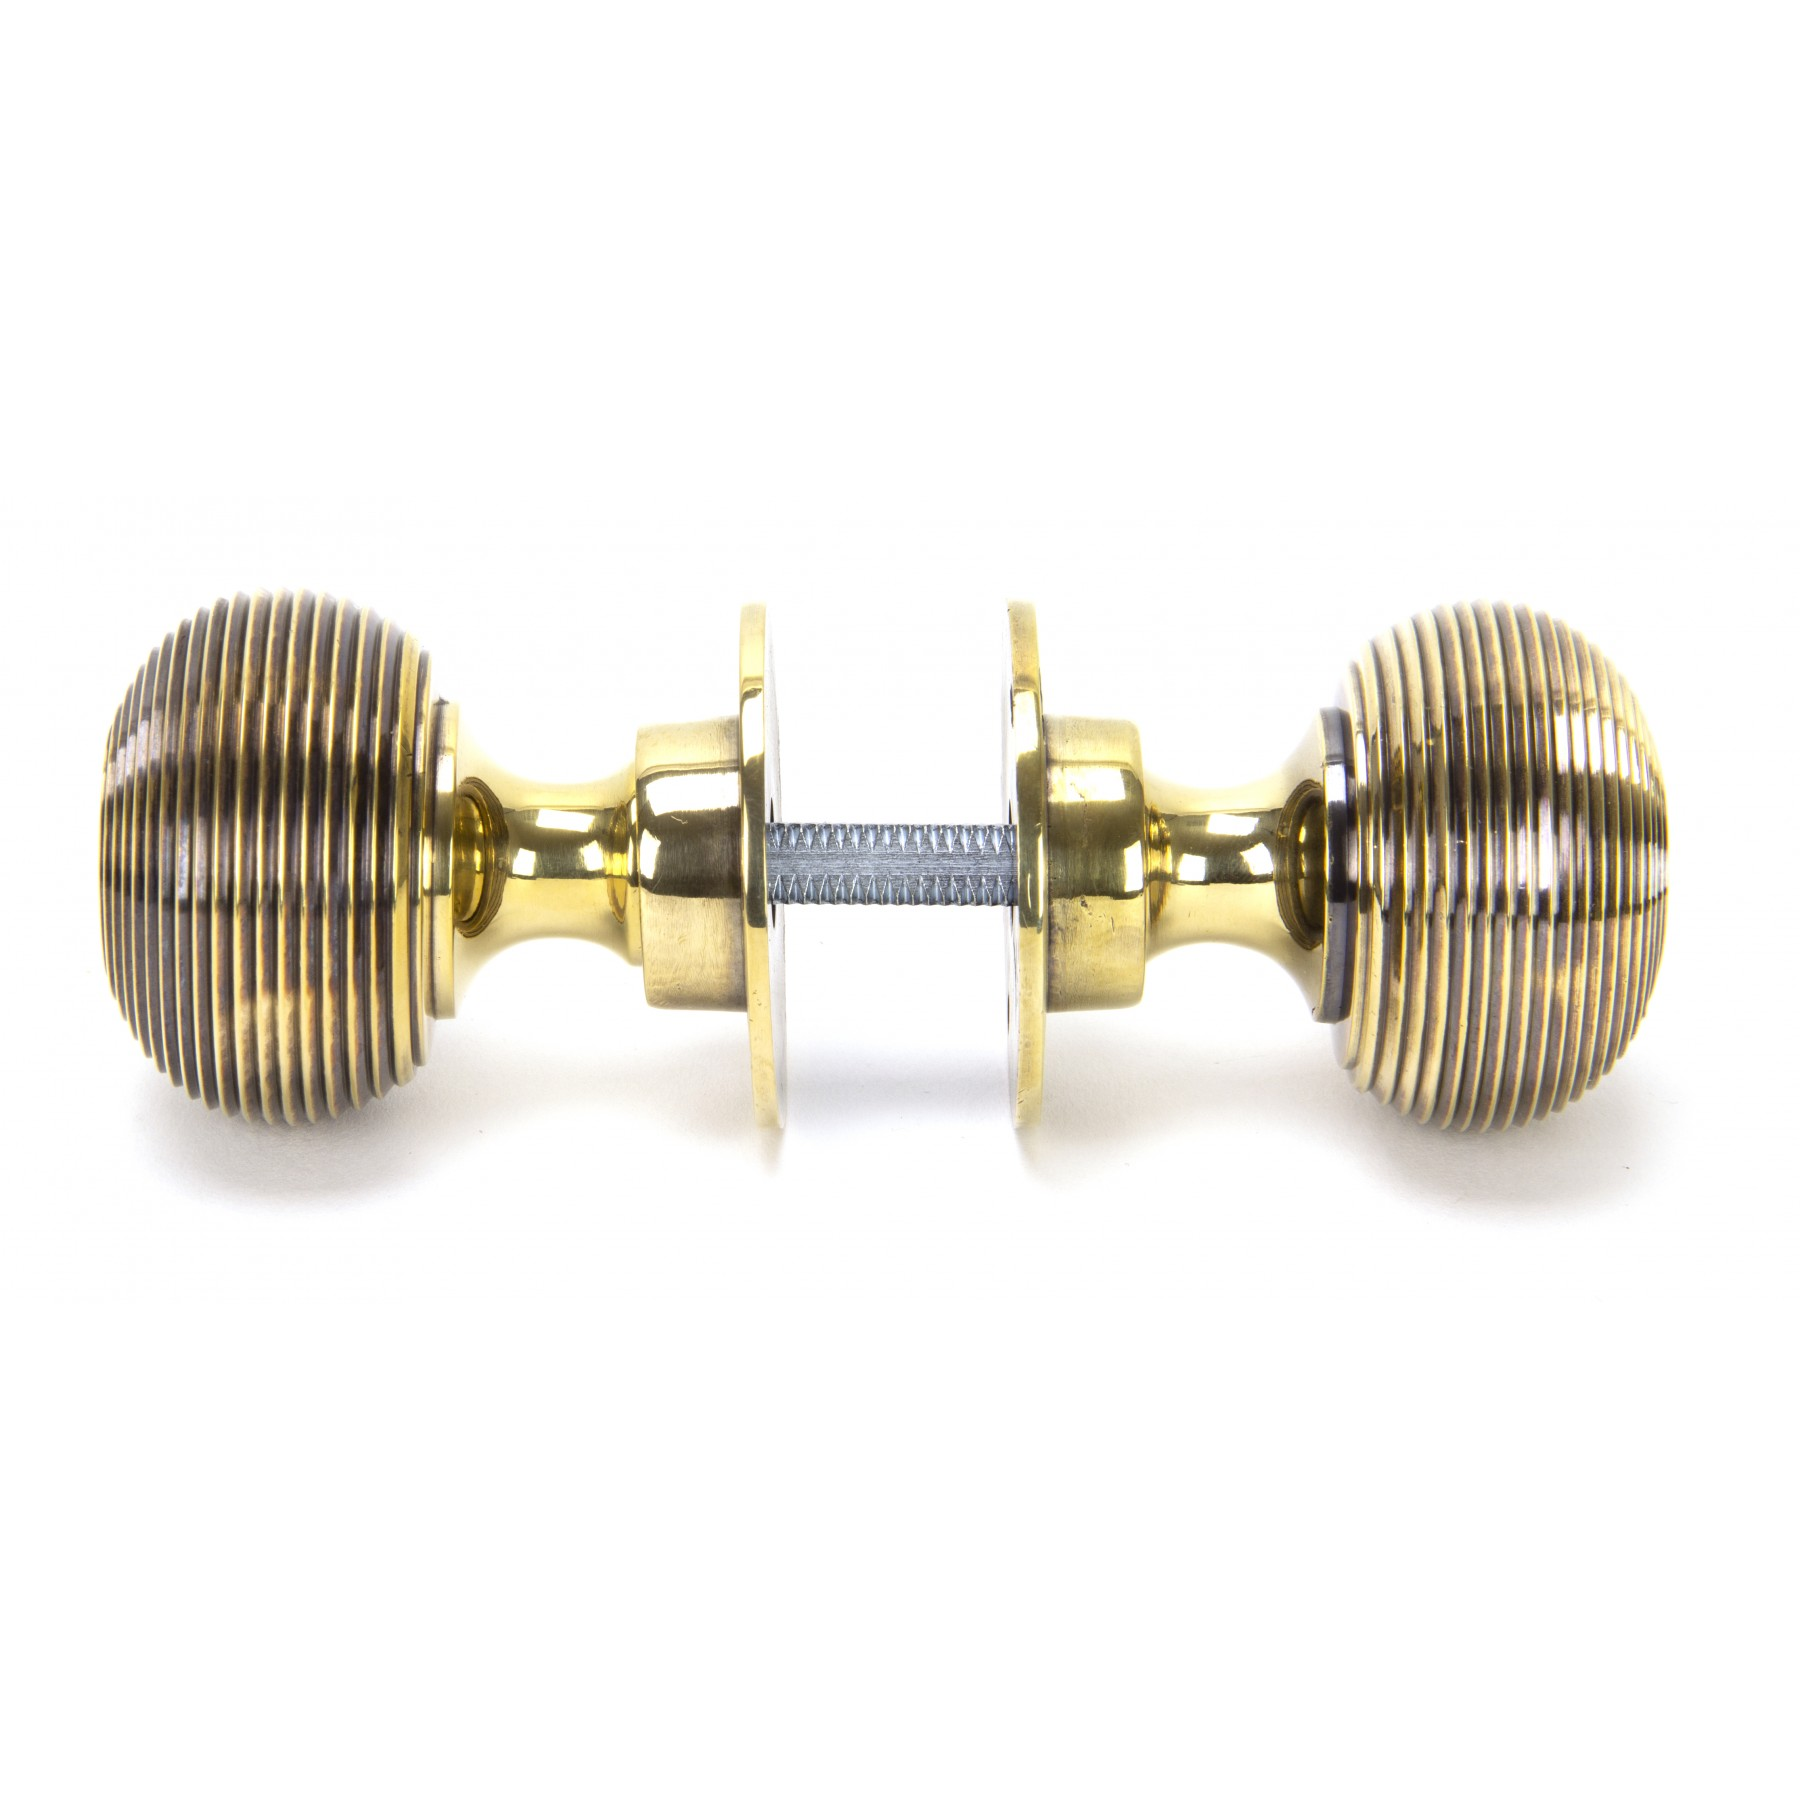 83633 Aged Brass Beehive Hollow Mortice/Rim Knob Set